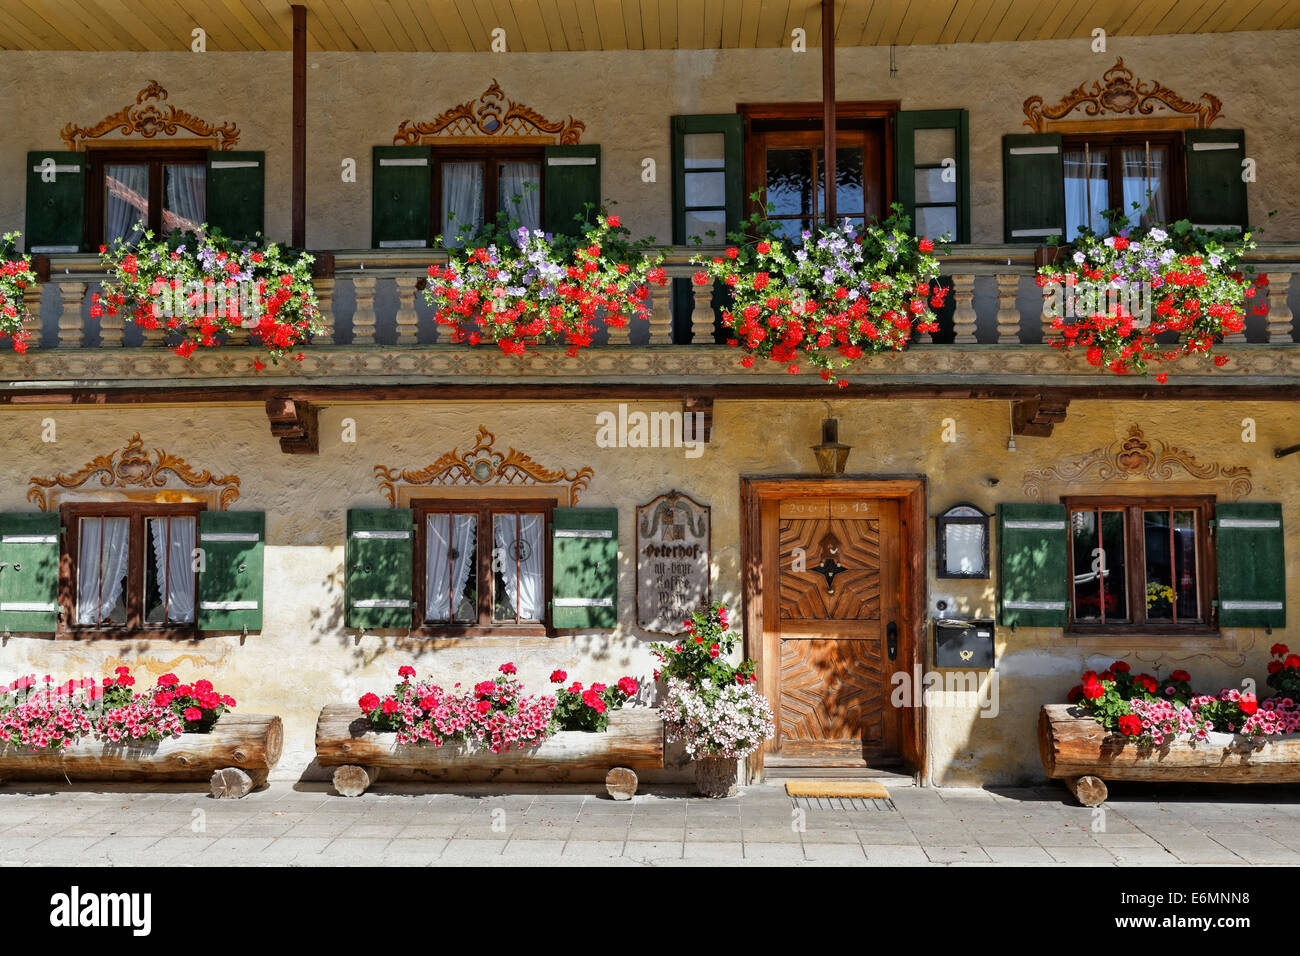 Peterhof wine bar, Bayrischzell, Upper Bavaria, Bavaria, Germany - Stock Image